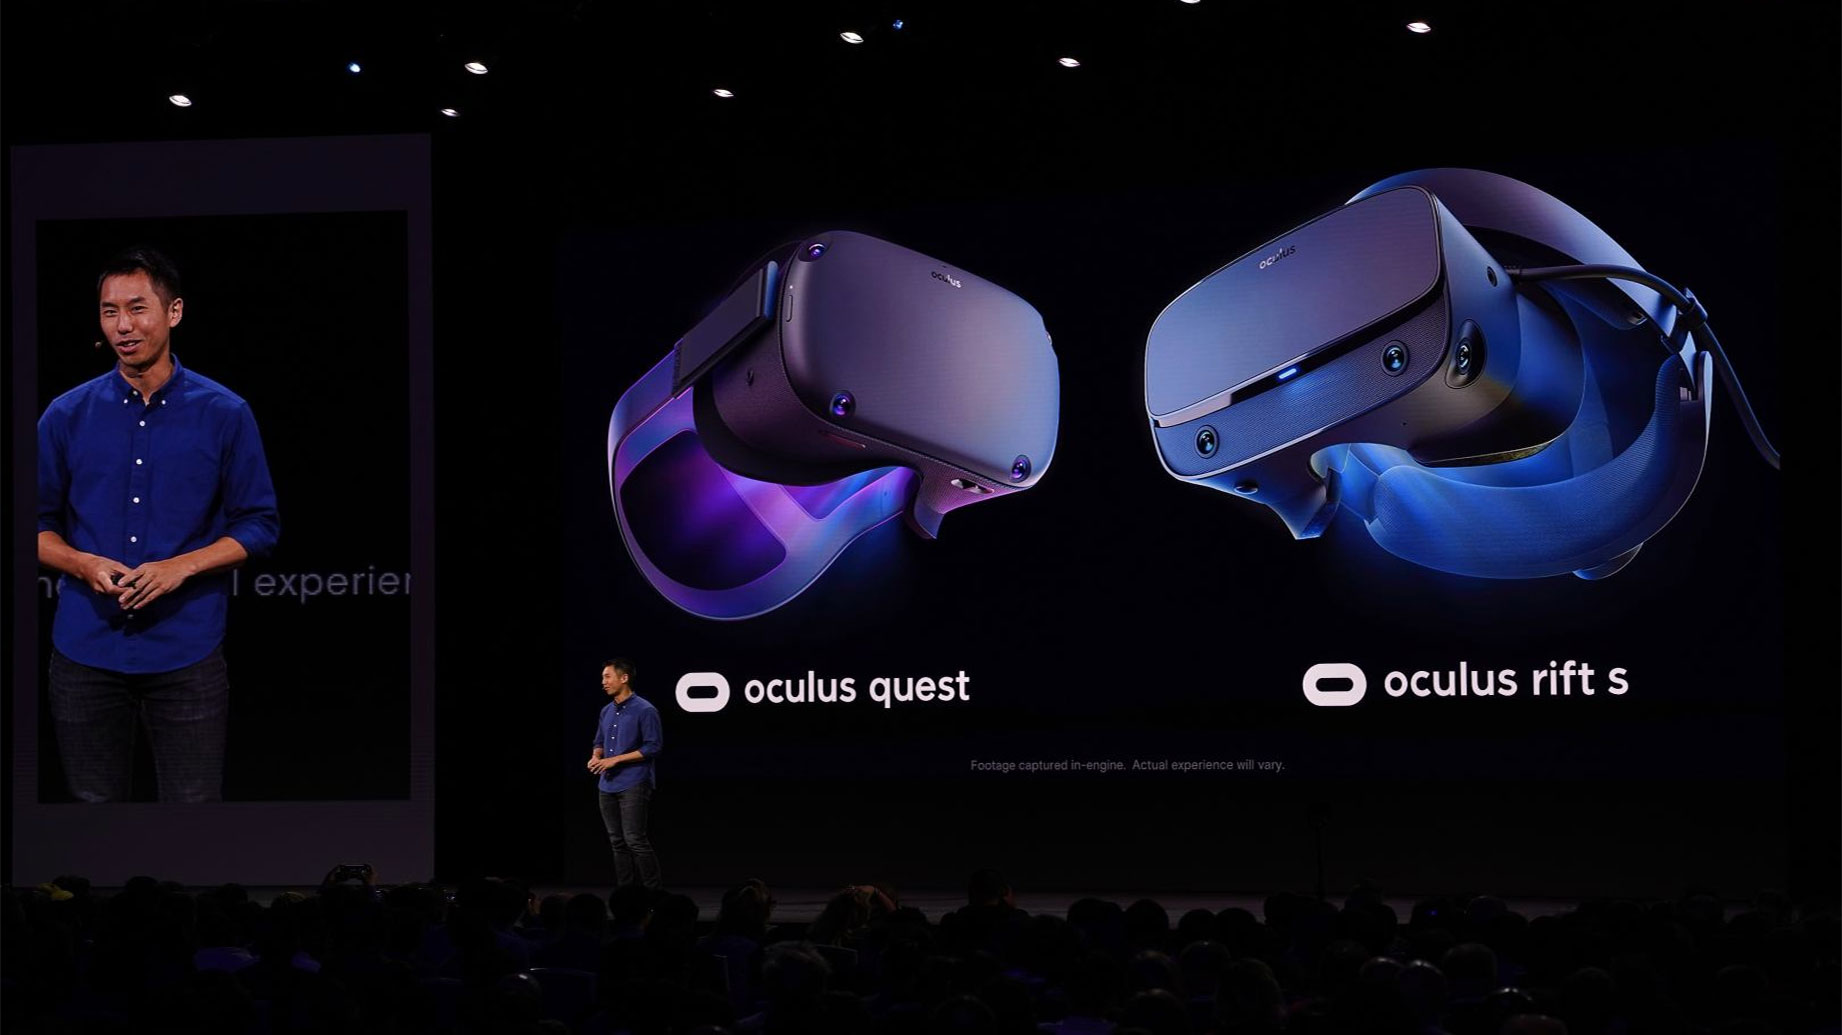 Facebook's Sean Liu: we are at an inflection point of the VR industry